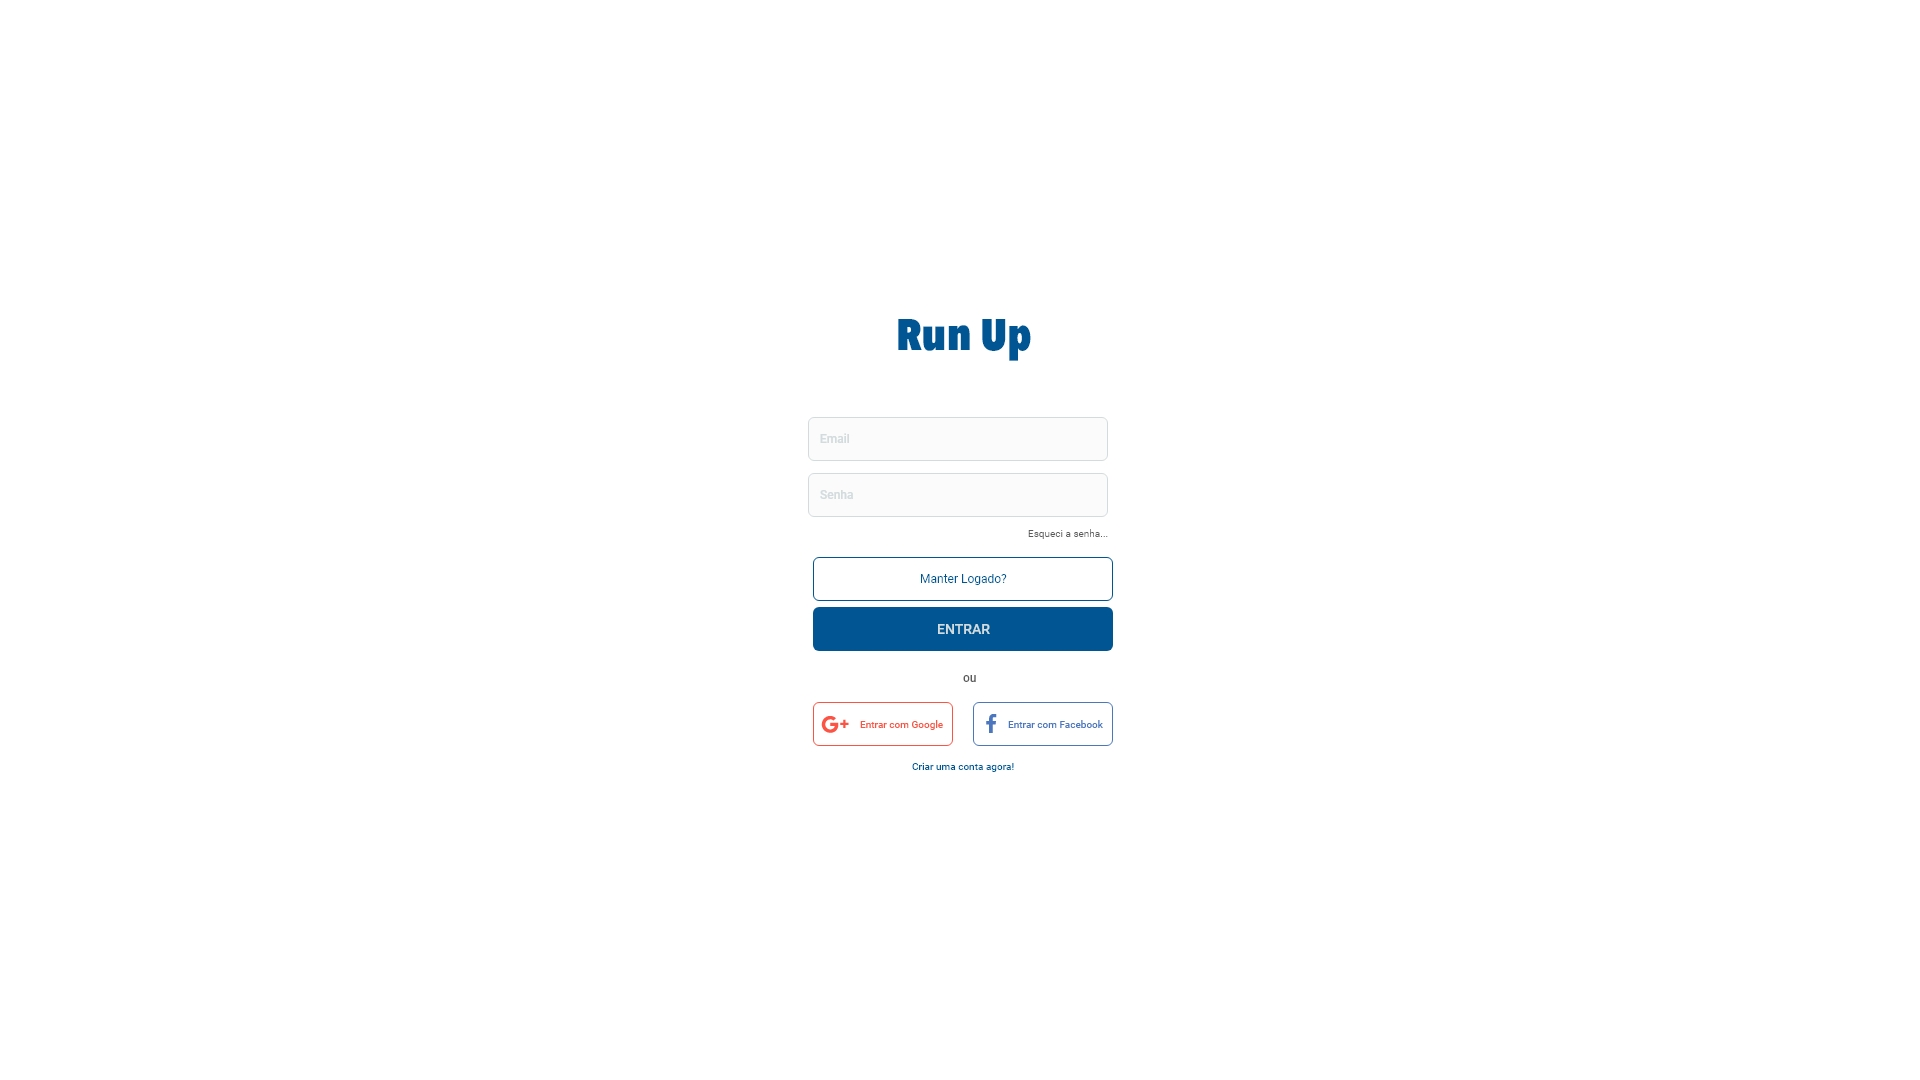 Interface - gerenciador de conteudo Run Up